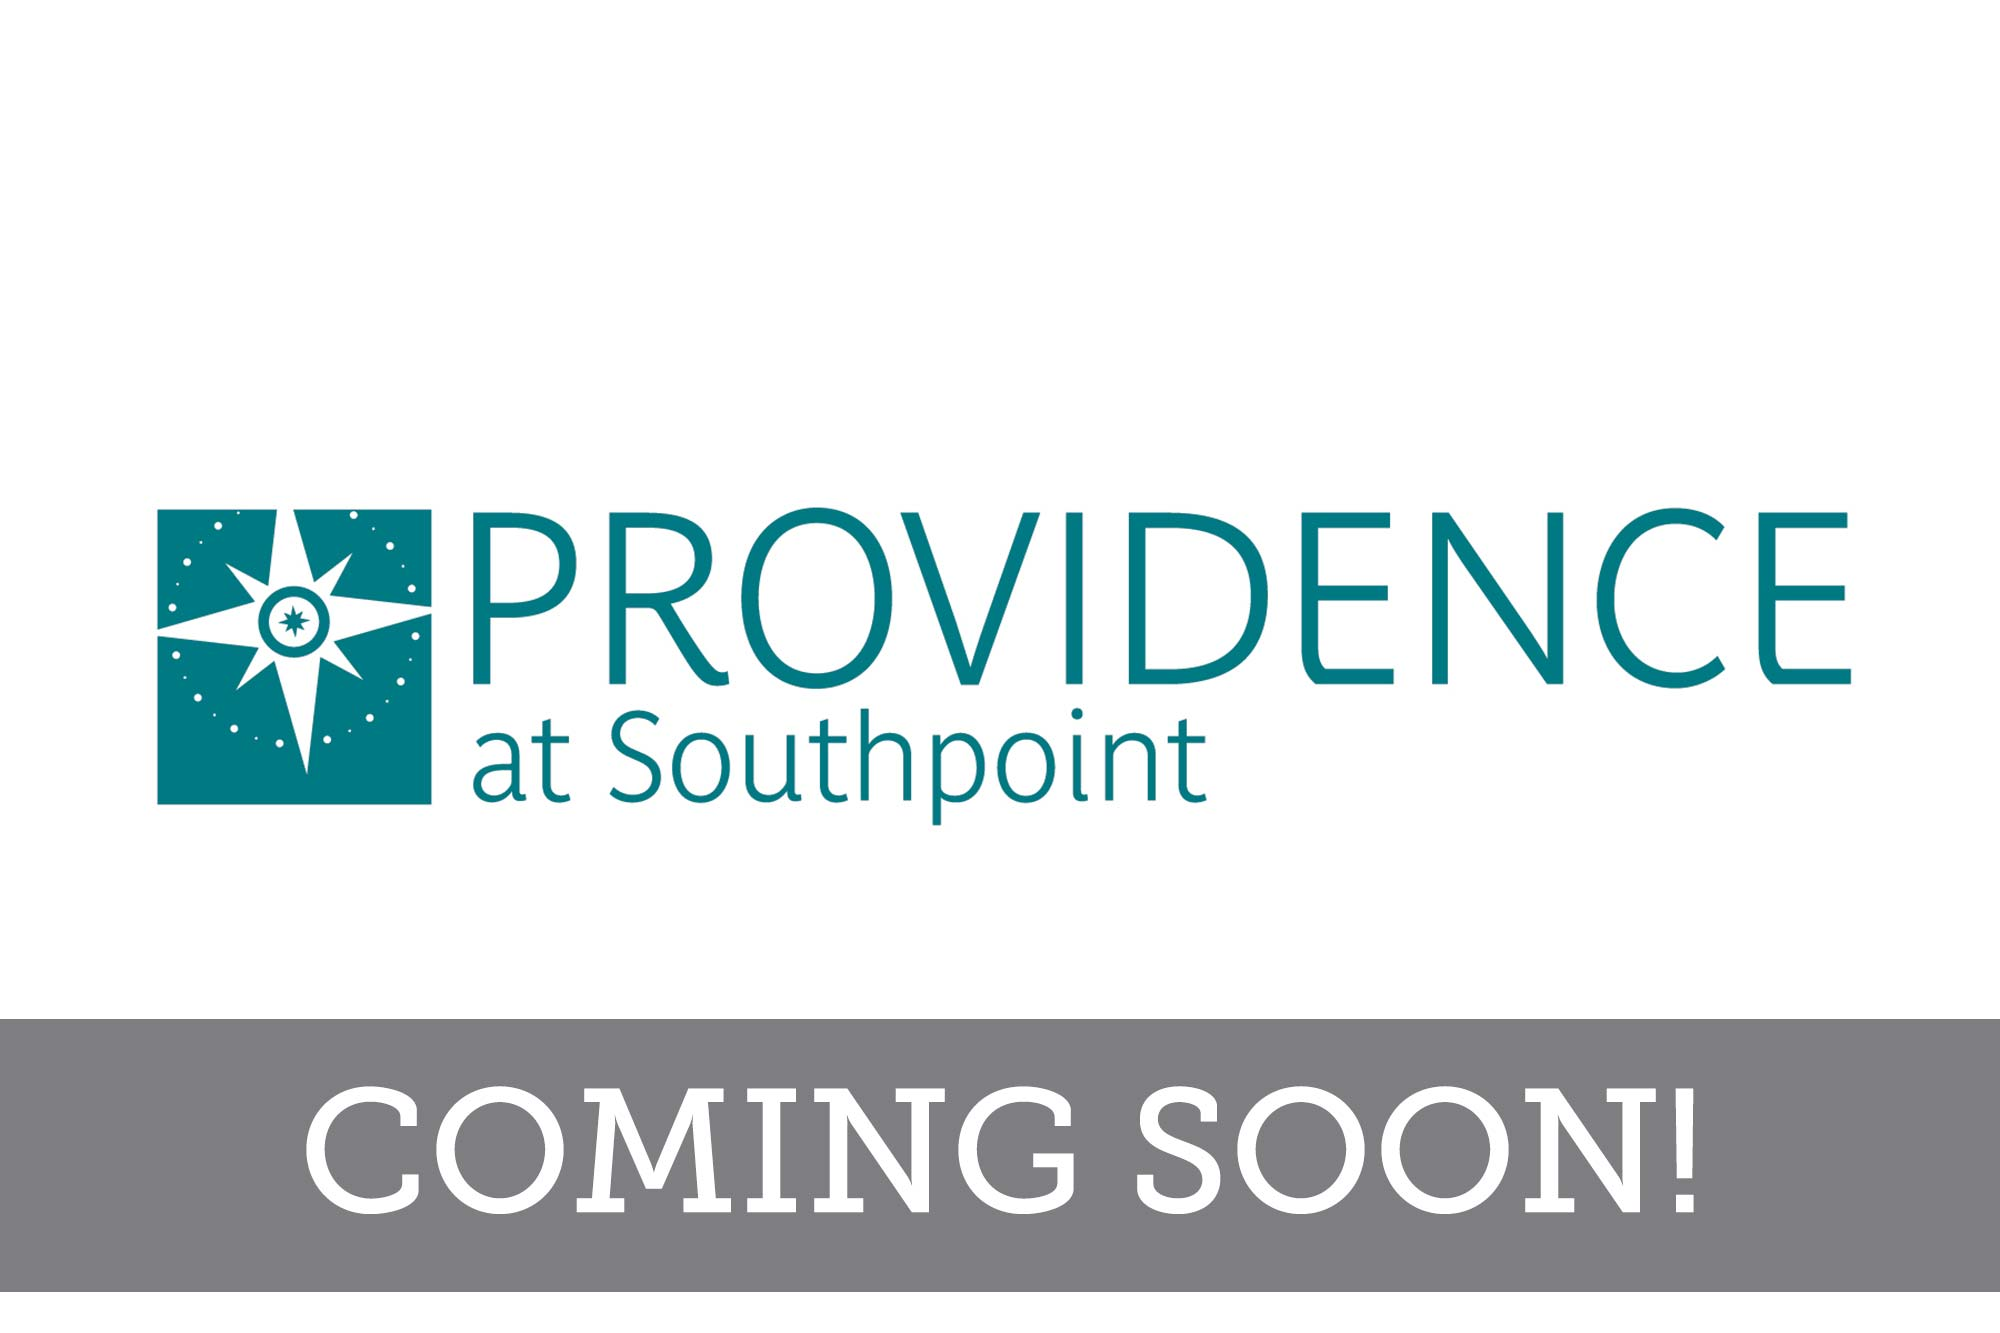 Providence at Southpoint - Coming Soon